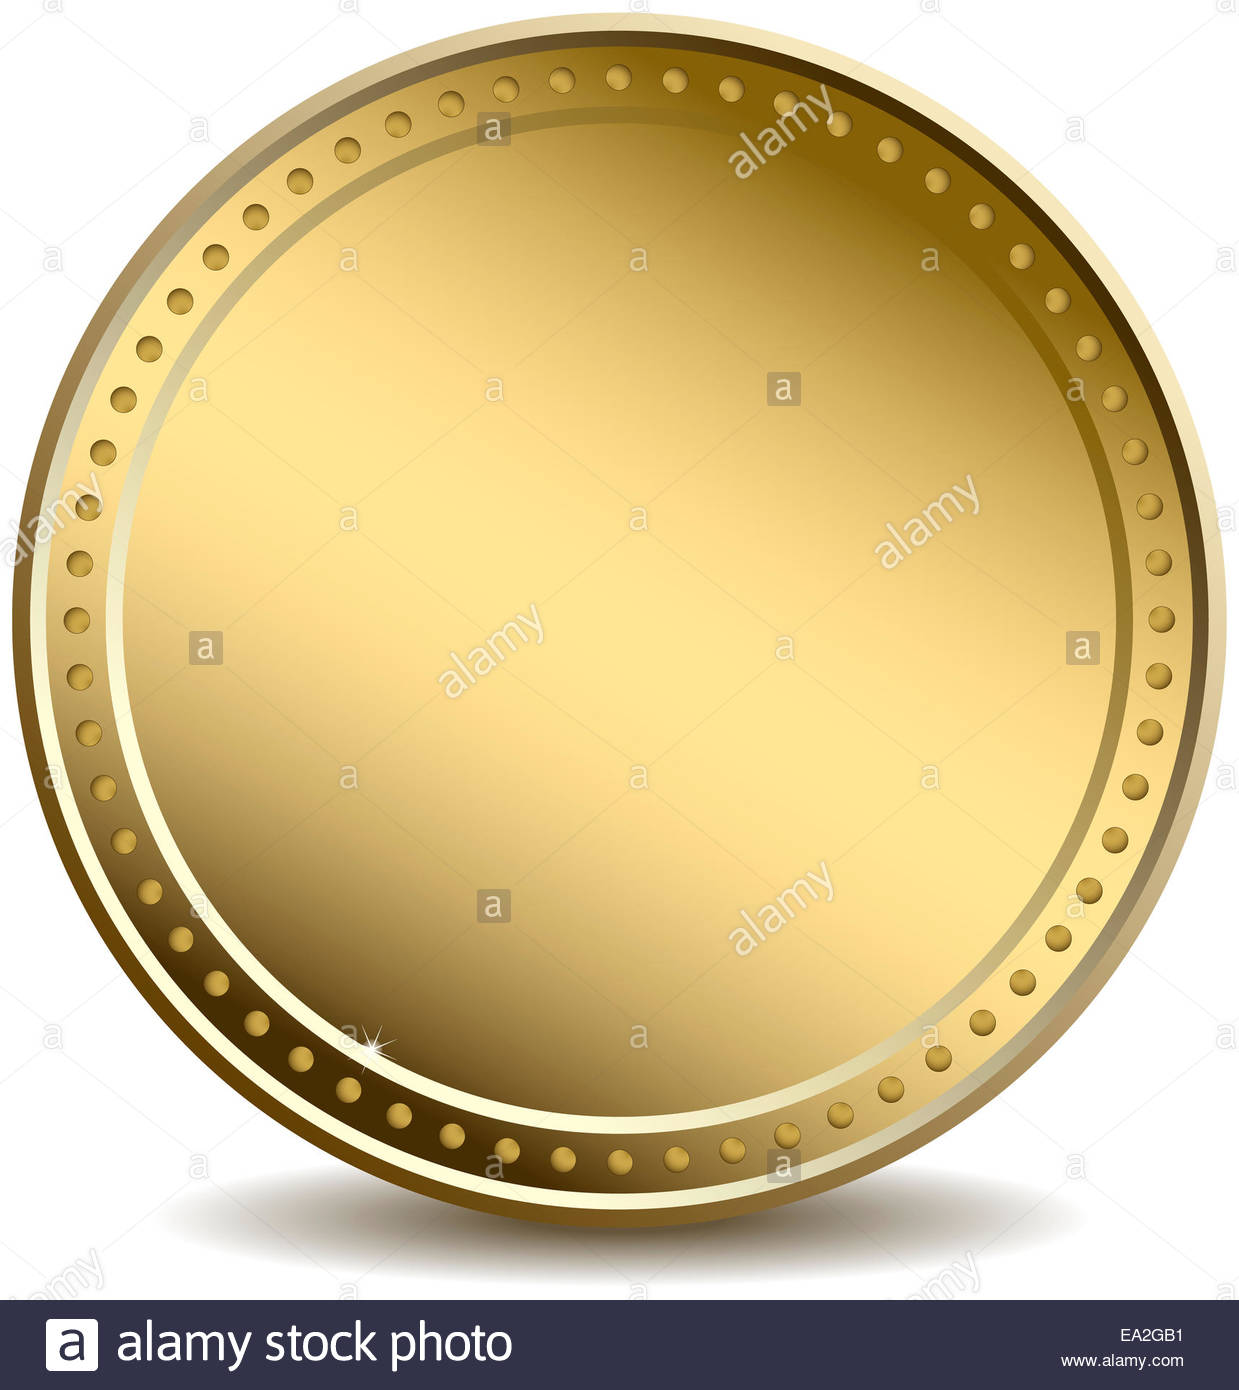 blank gold coin stock photo 75044789 alamy